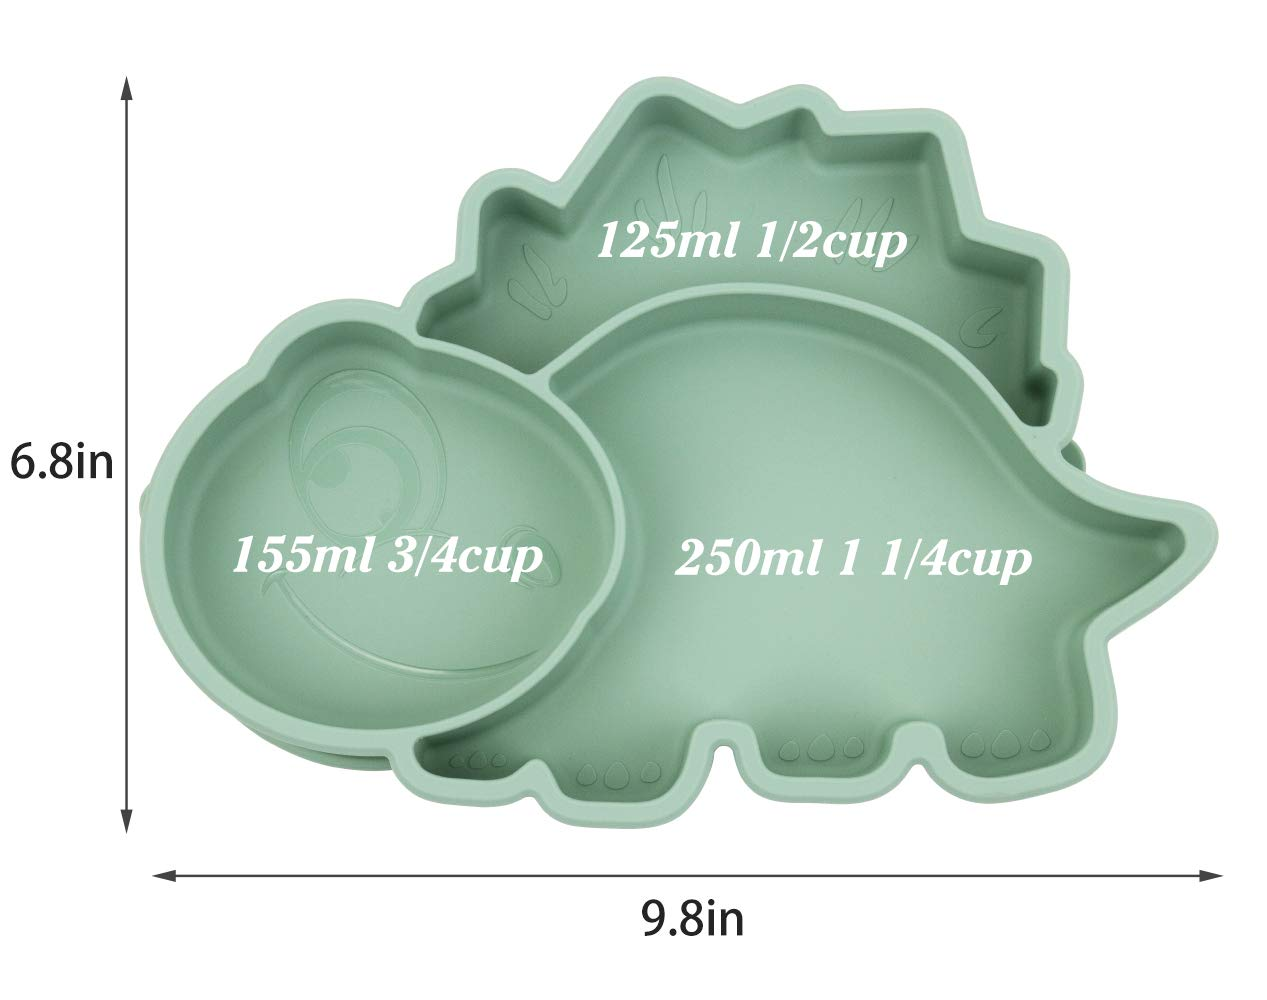 Qshare Toddler Plate Dishwasher and Microwave Safe Silicone Placemat 11x8x1 inch BPA-Free Strong Suction Plates for Toddlers Portable Baby Plate for Toddlers and Kids Dino-Gray